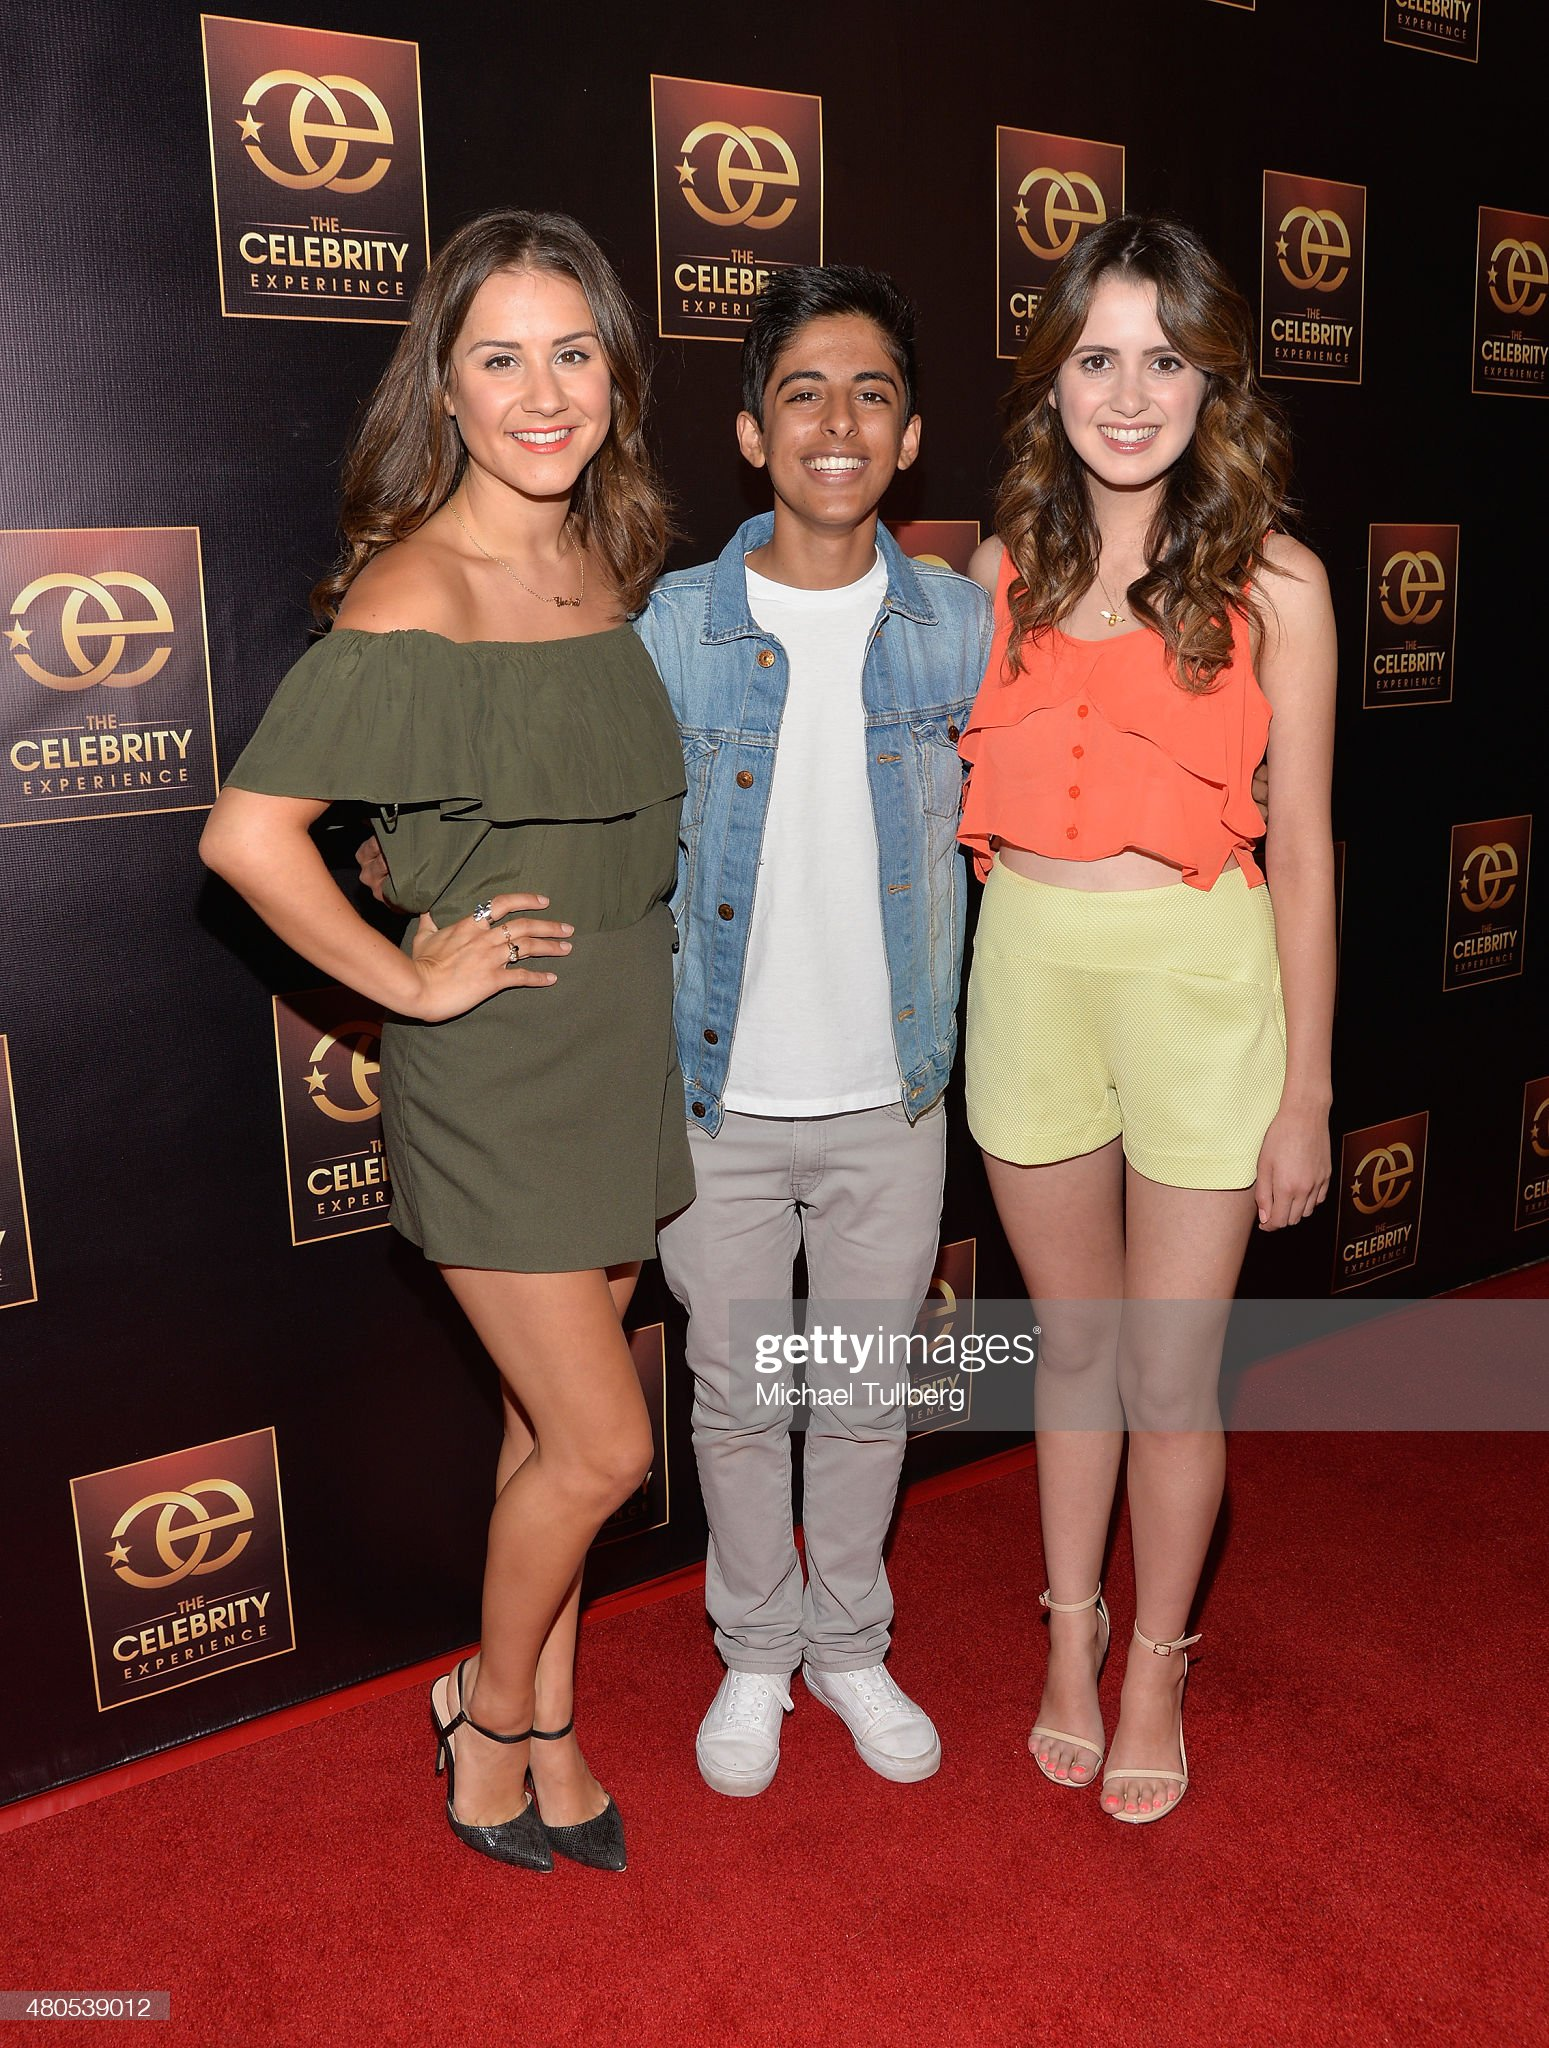 ¿Cuánto mide Karan Brar? - Altura - Real height Actors-electra-formosa-karan-brar-and-laura-marano-attend-the-panel-picture-id480539012?s=2048x2048